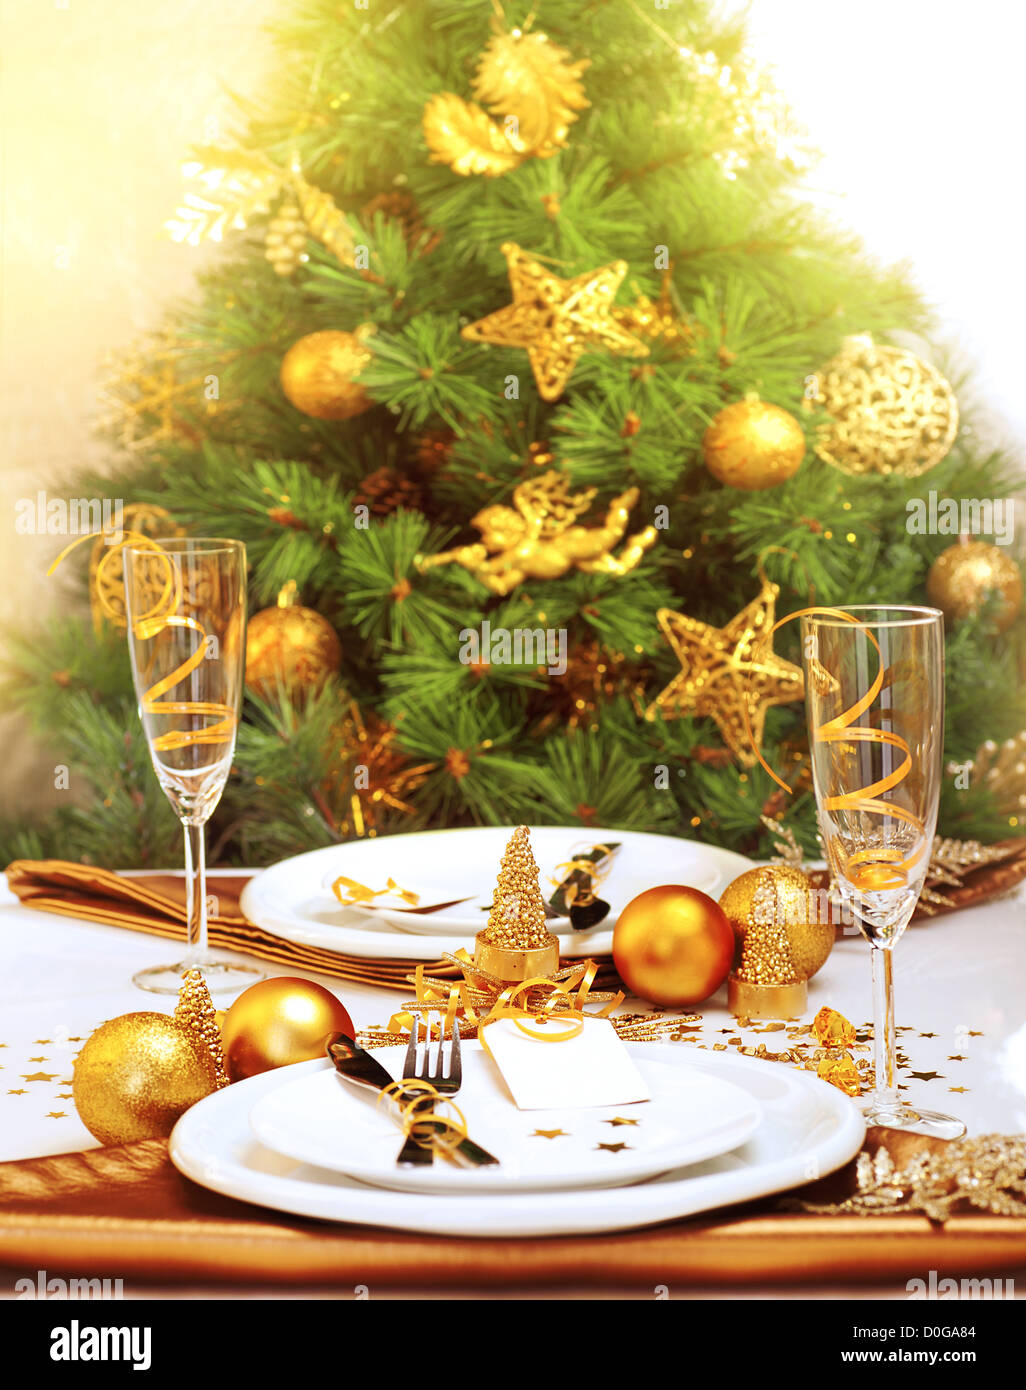 Photo Of Romantic Christmastime Dinner, Luxury New Year Table Setting,  Gorgeous Decorated Christmas Tree By Golden Toys Of Stars